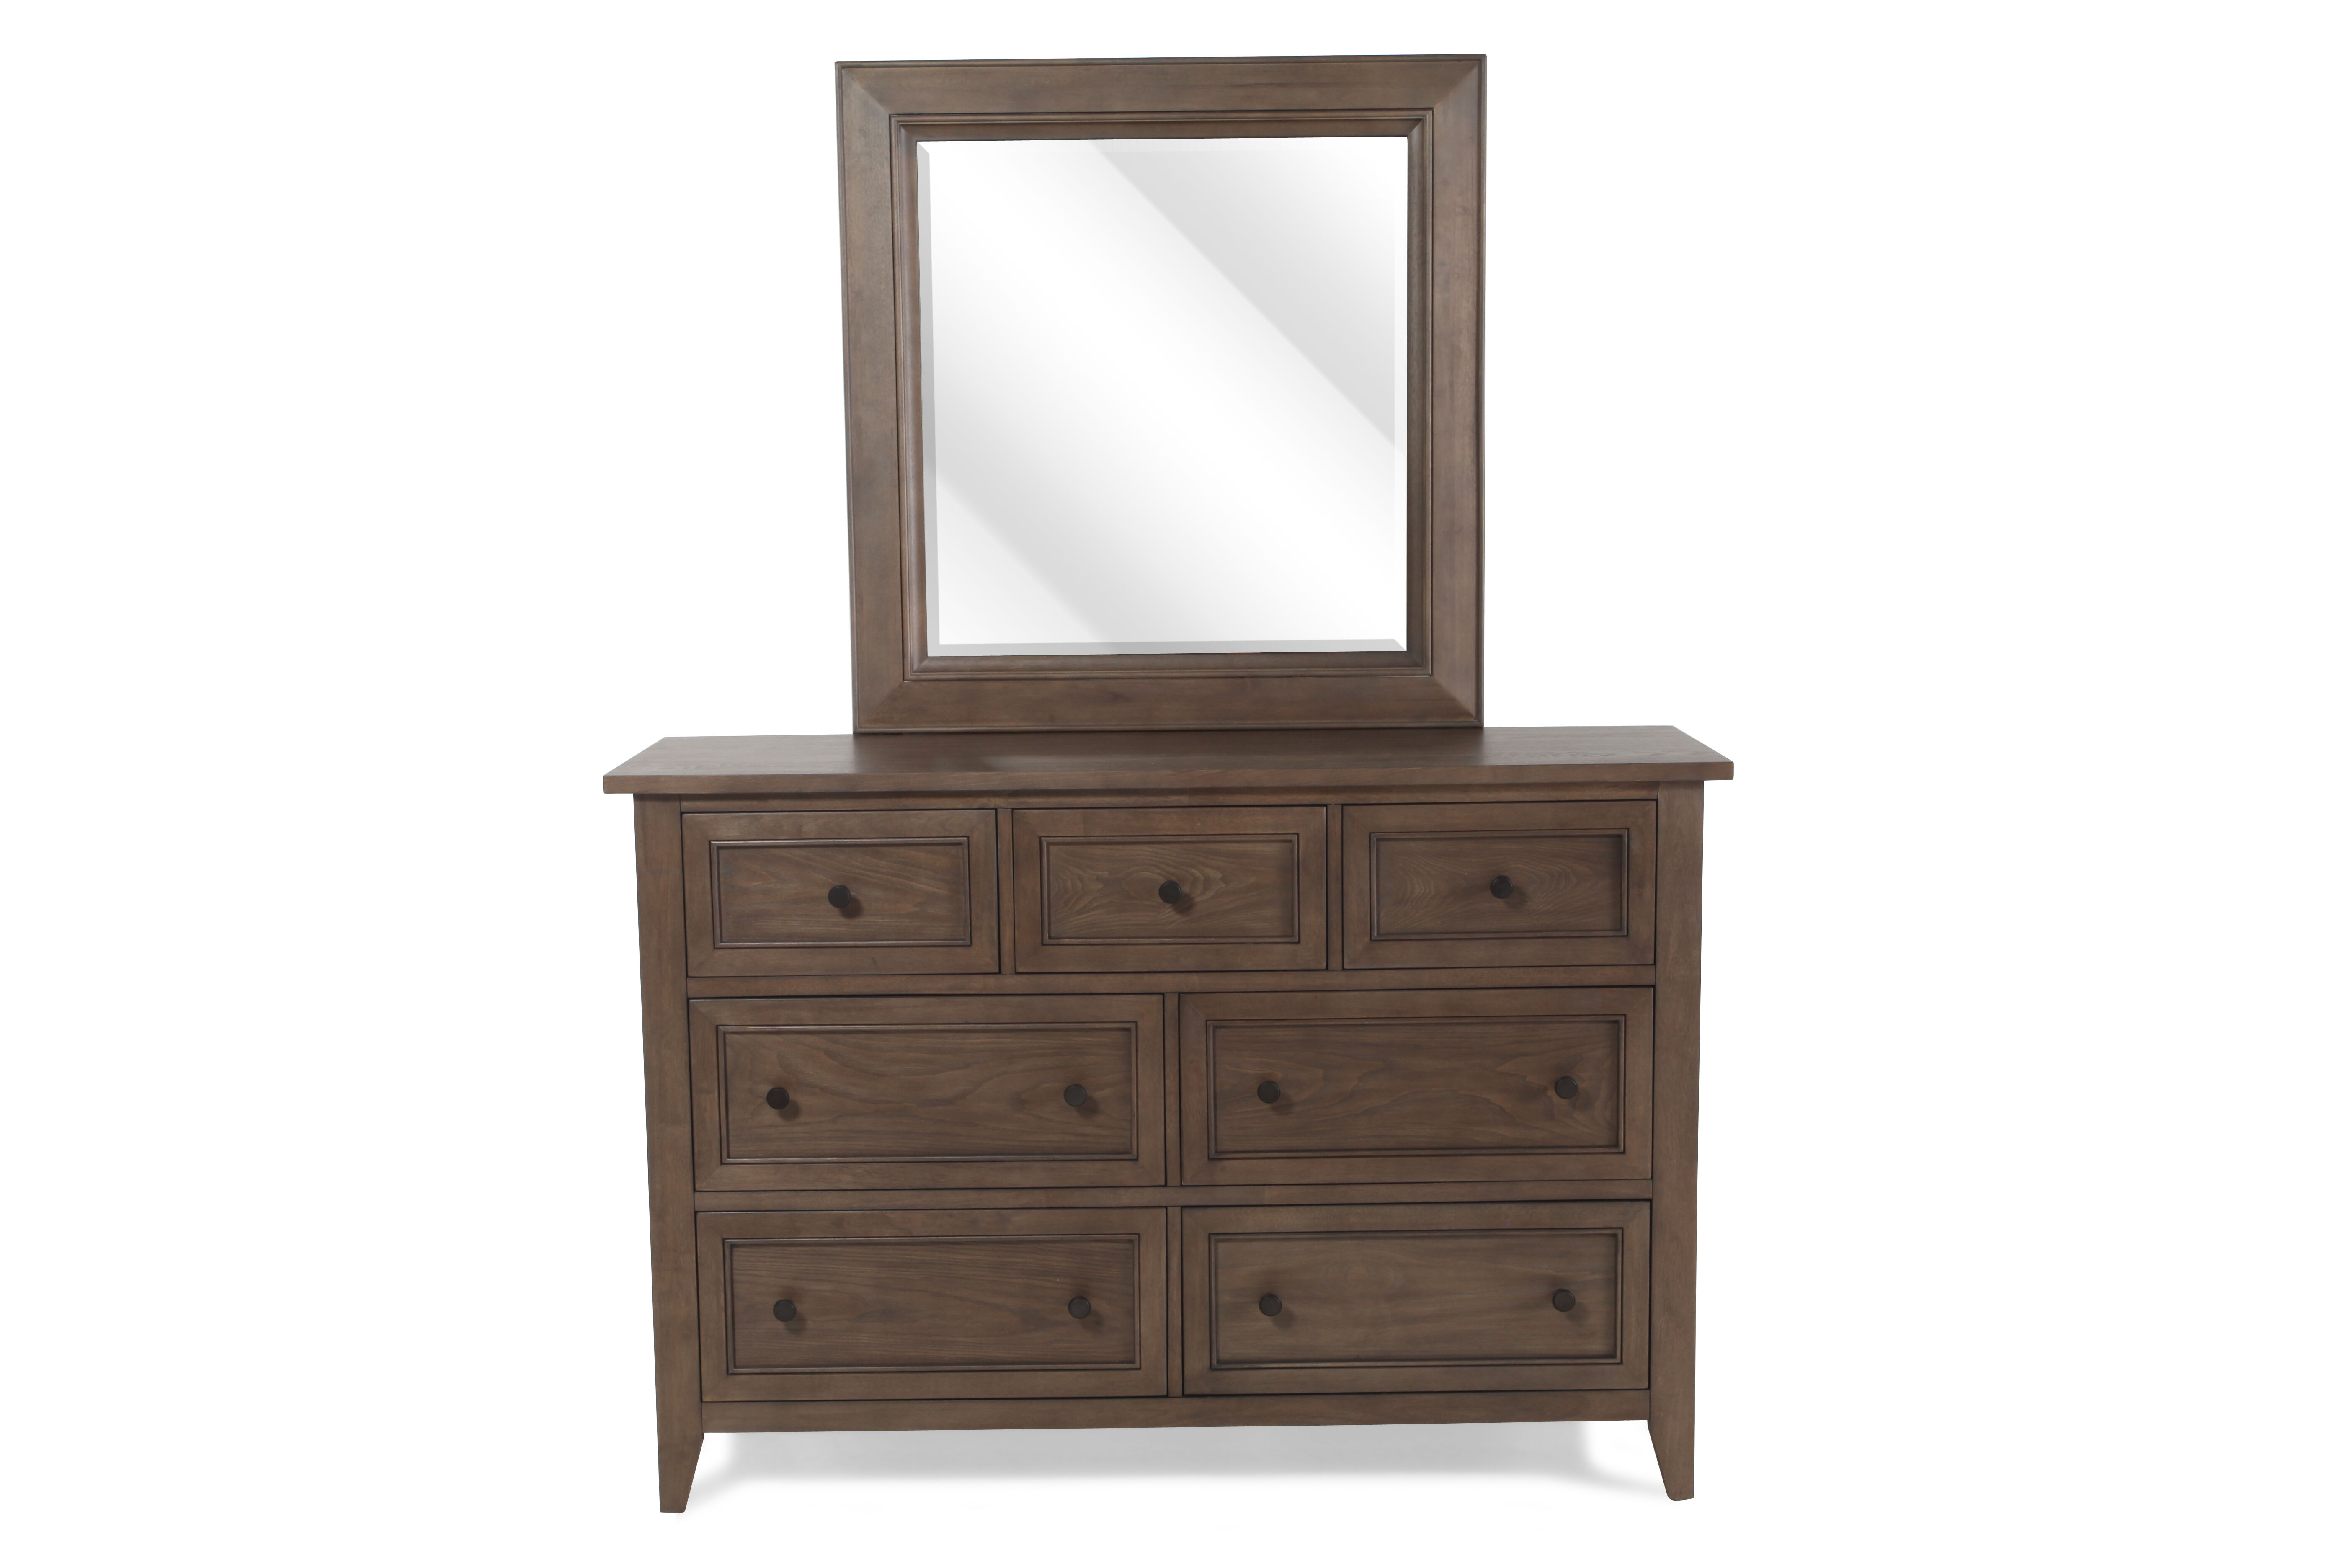 Genial Two Piece Raised Panel Dresser And Mirror In Soft Driftwood